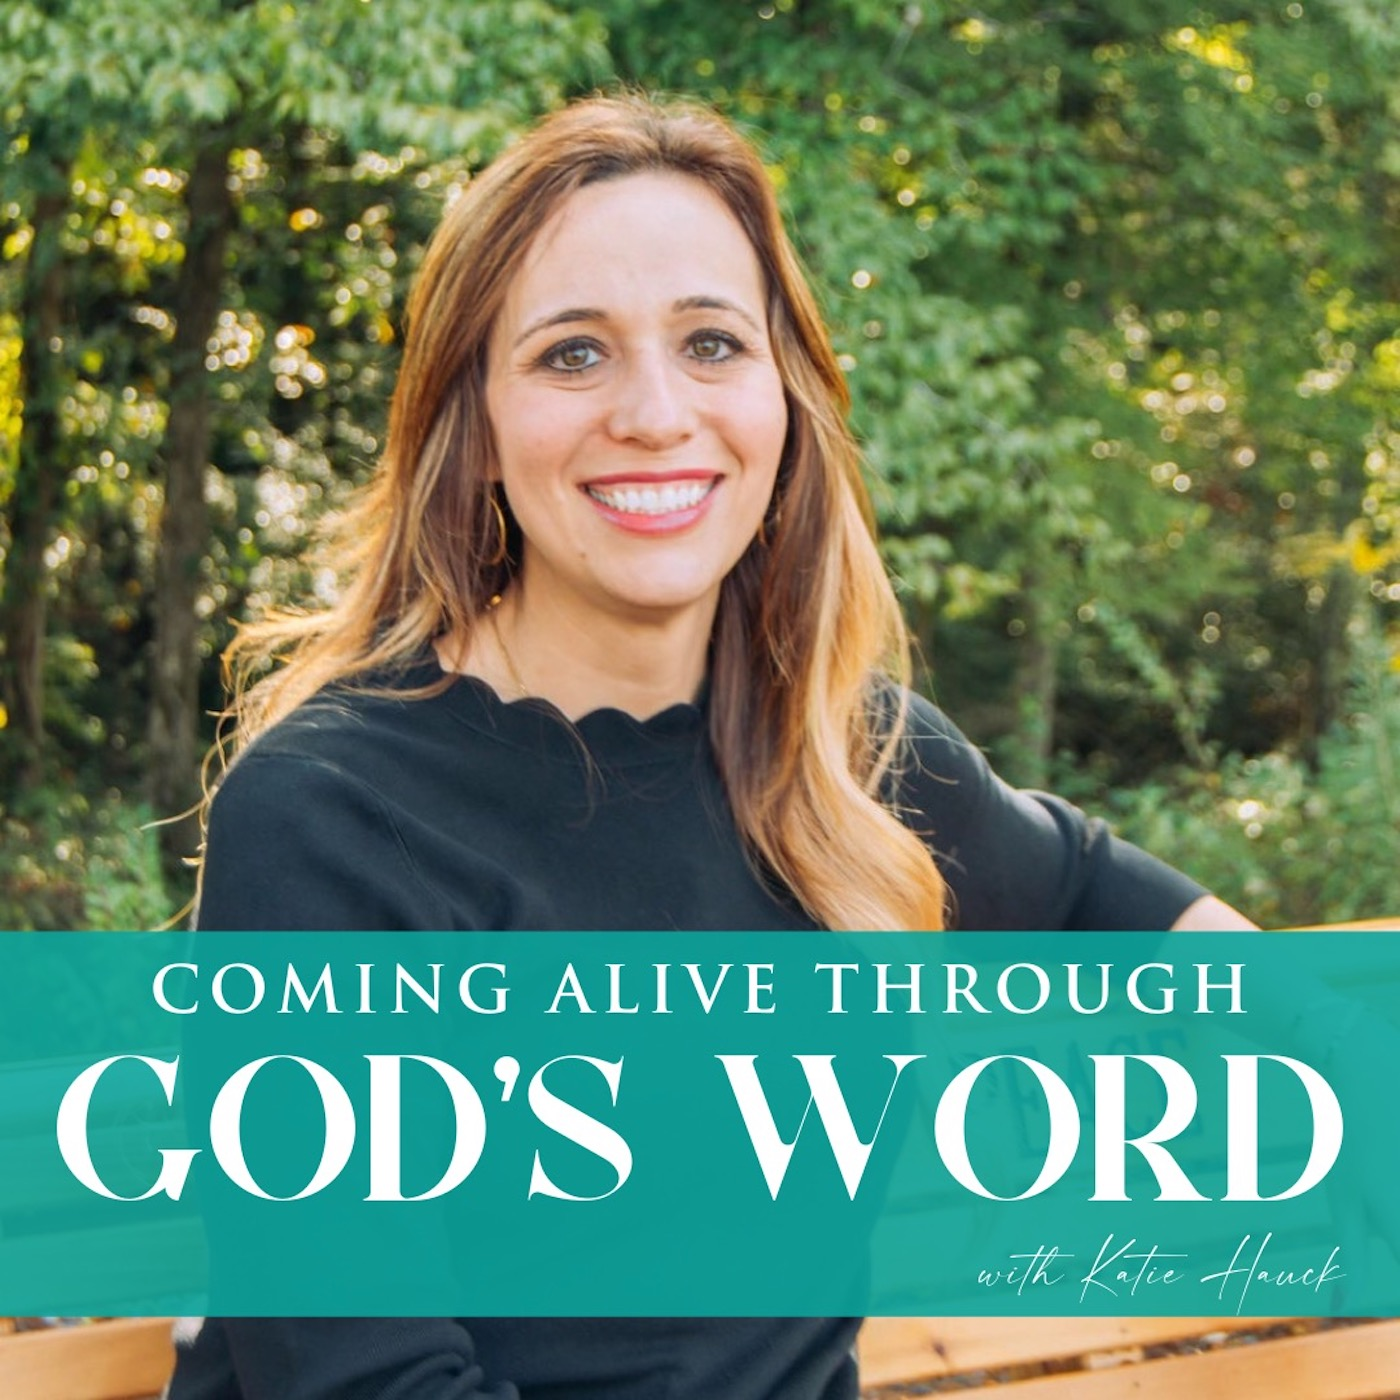 Katie Hauck Ministries Podcast